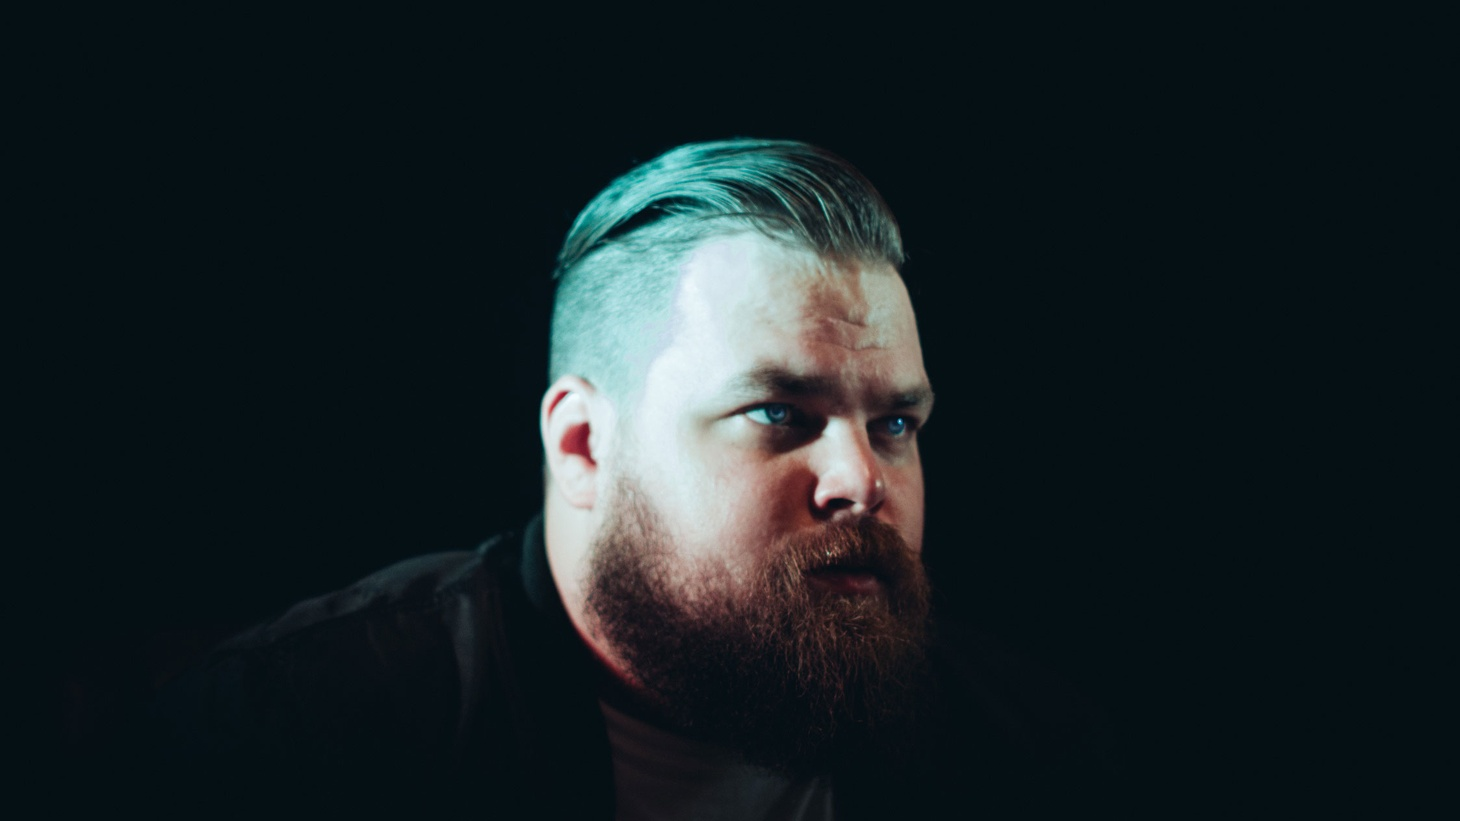 Com Truise is the latest pseudonym of producer and designer Seth Haley. Known for his playful nature and heady, melodic beats, the native New Yorker –now based in LA– shares an exclusive mix with us before a run of West Coast tour dates.